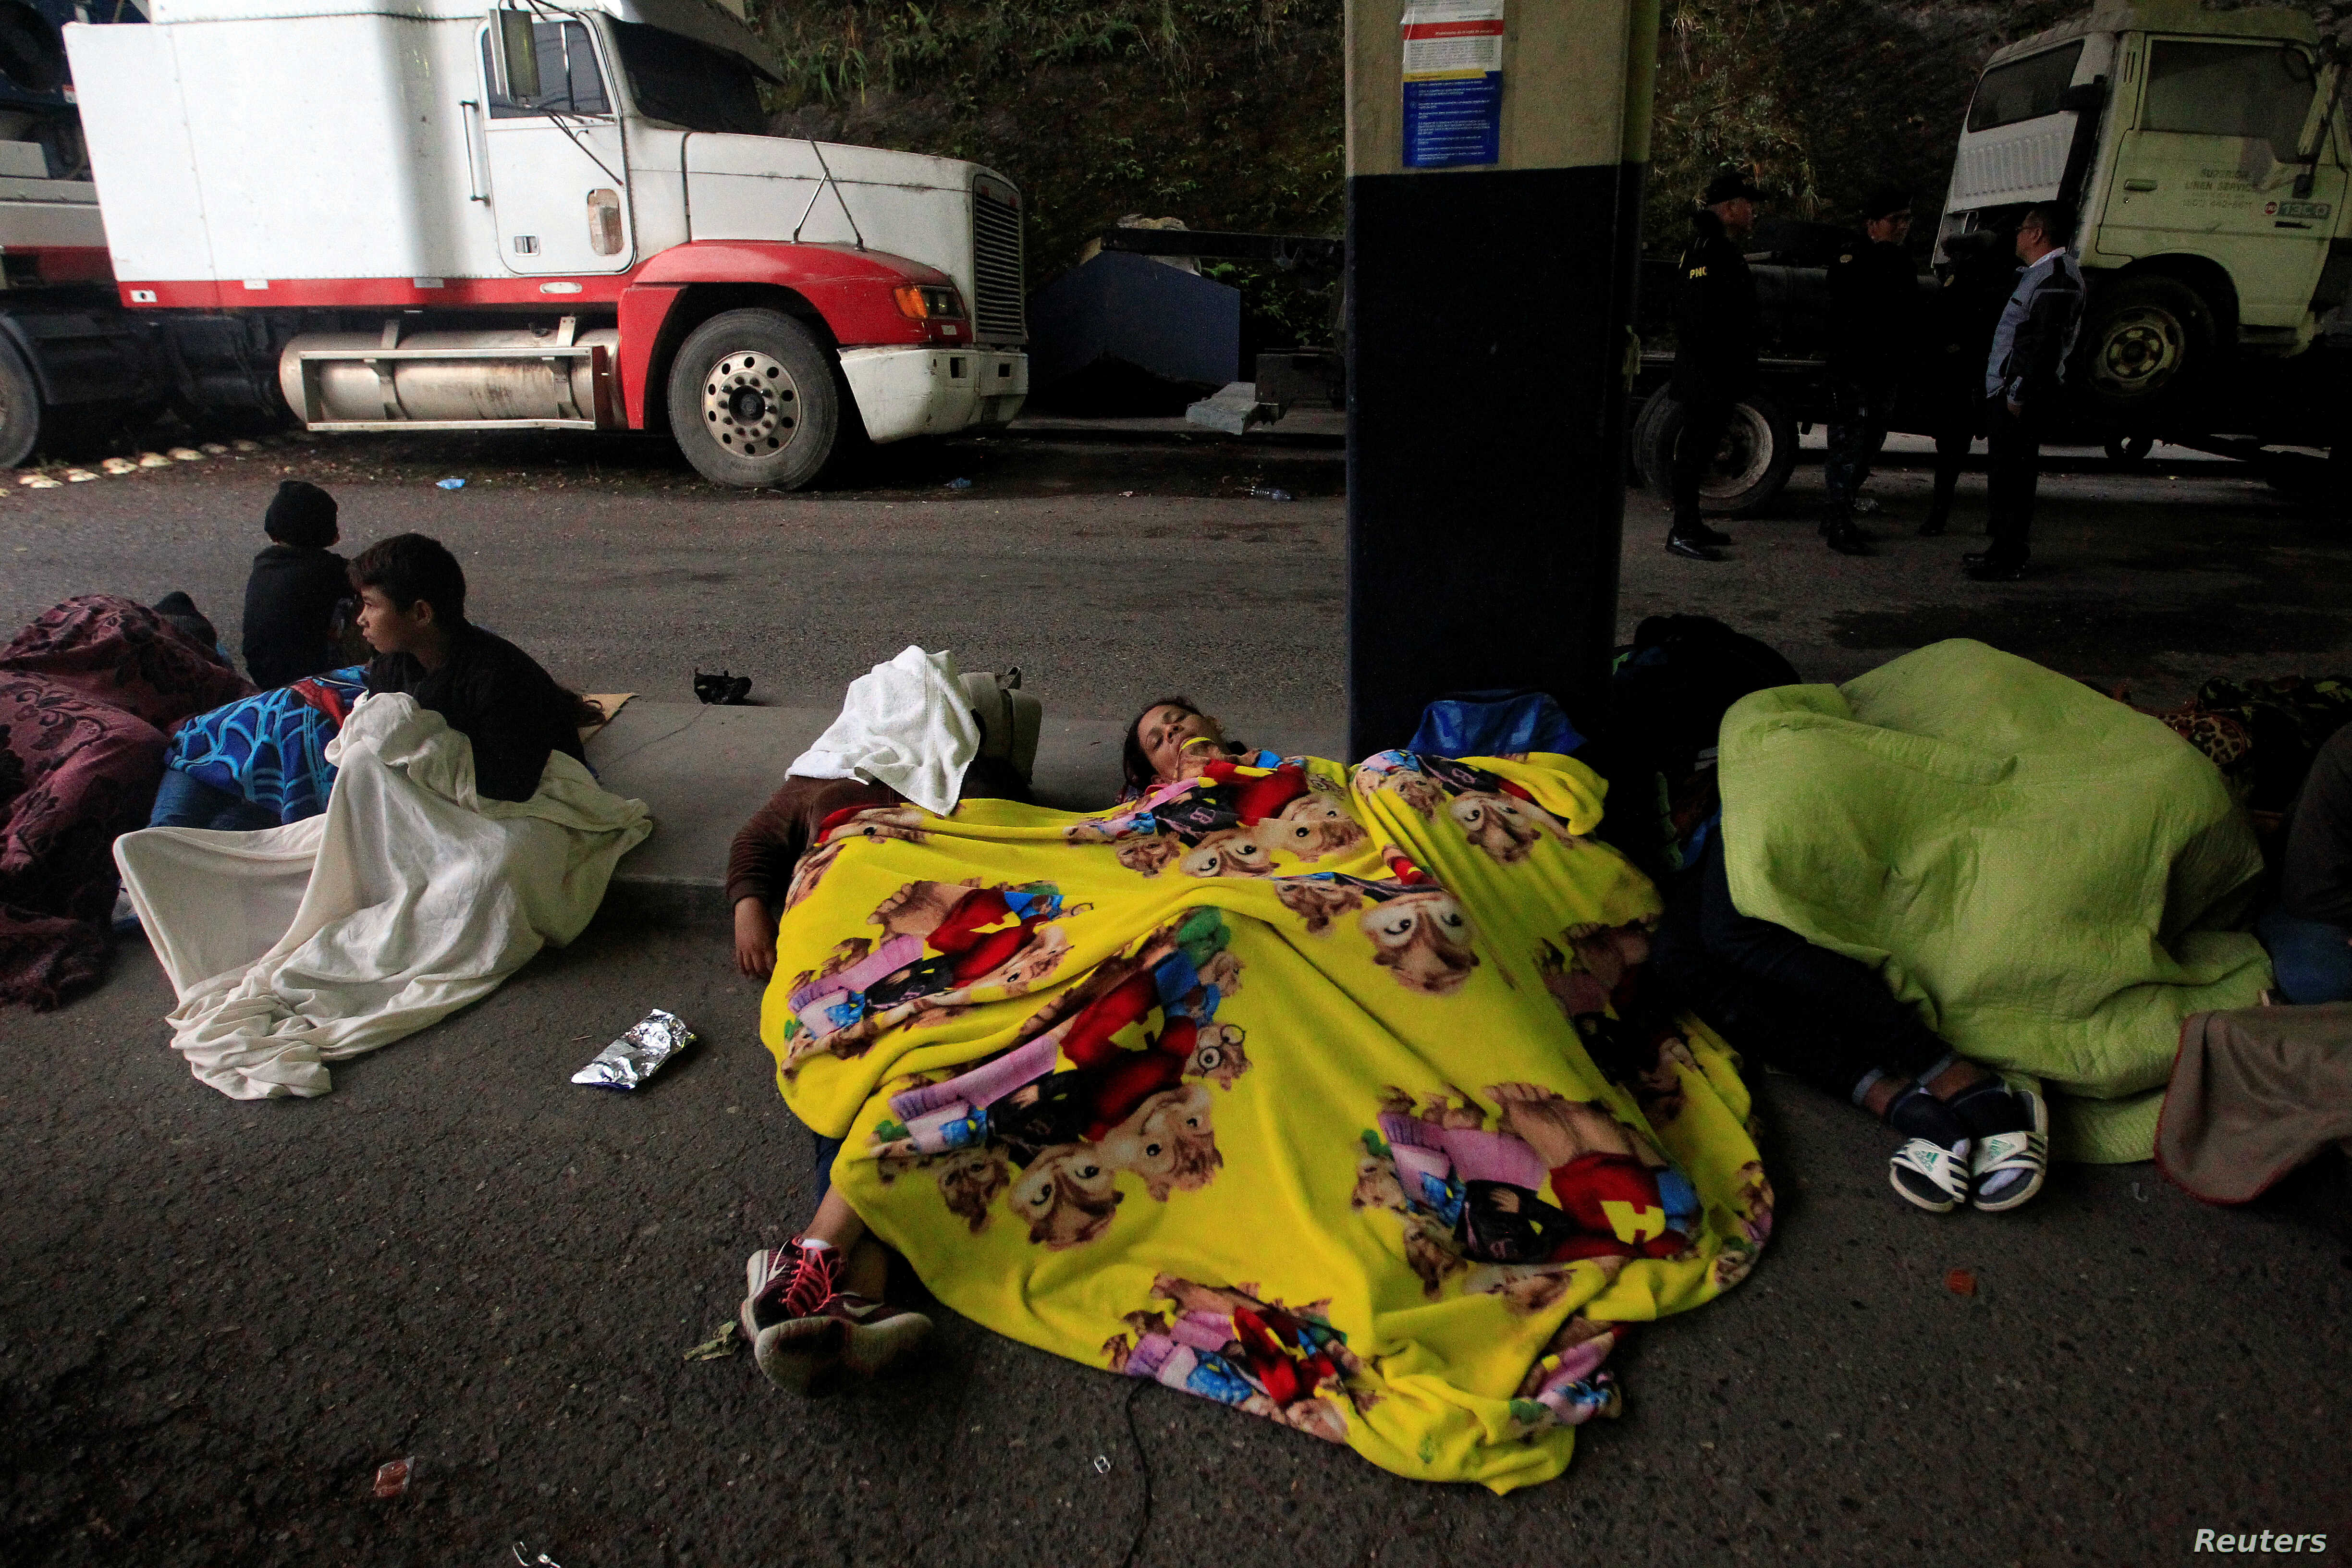 Migrants from Honduras, part of a new caravan from Central America trying to reach the United States, sleep on the ground at the Agua Caliente border checkpoint, in Esquipulas, Guatemala, Jan. 16, 2019.